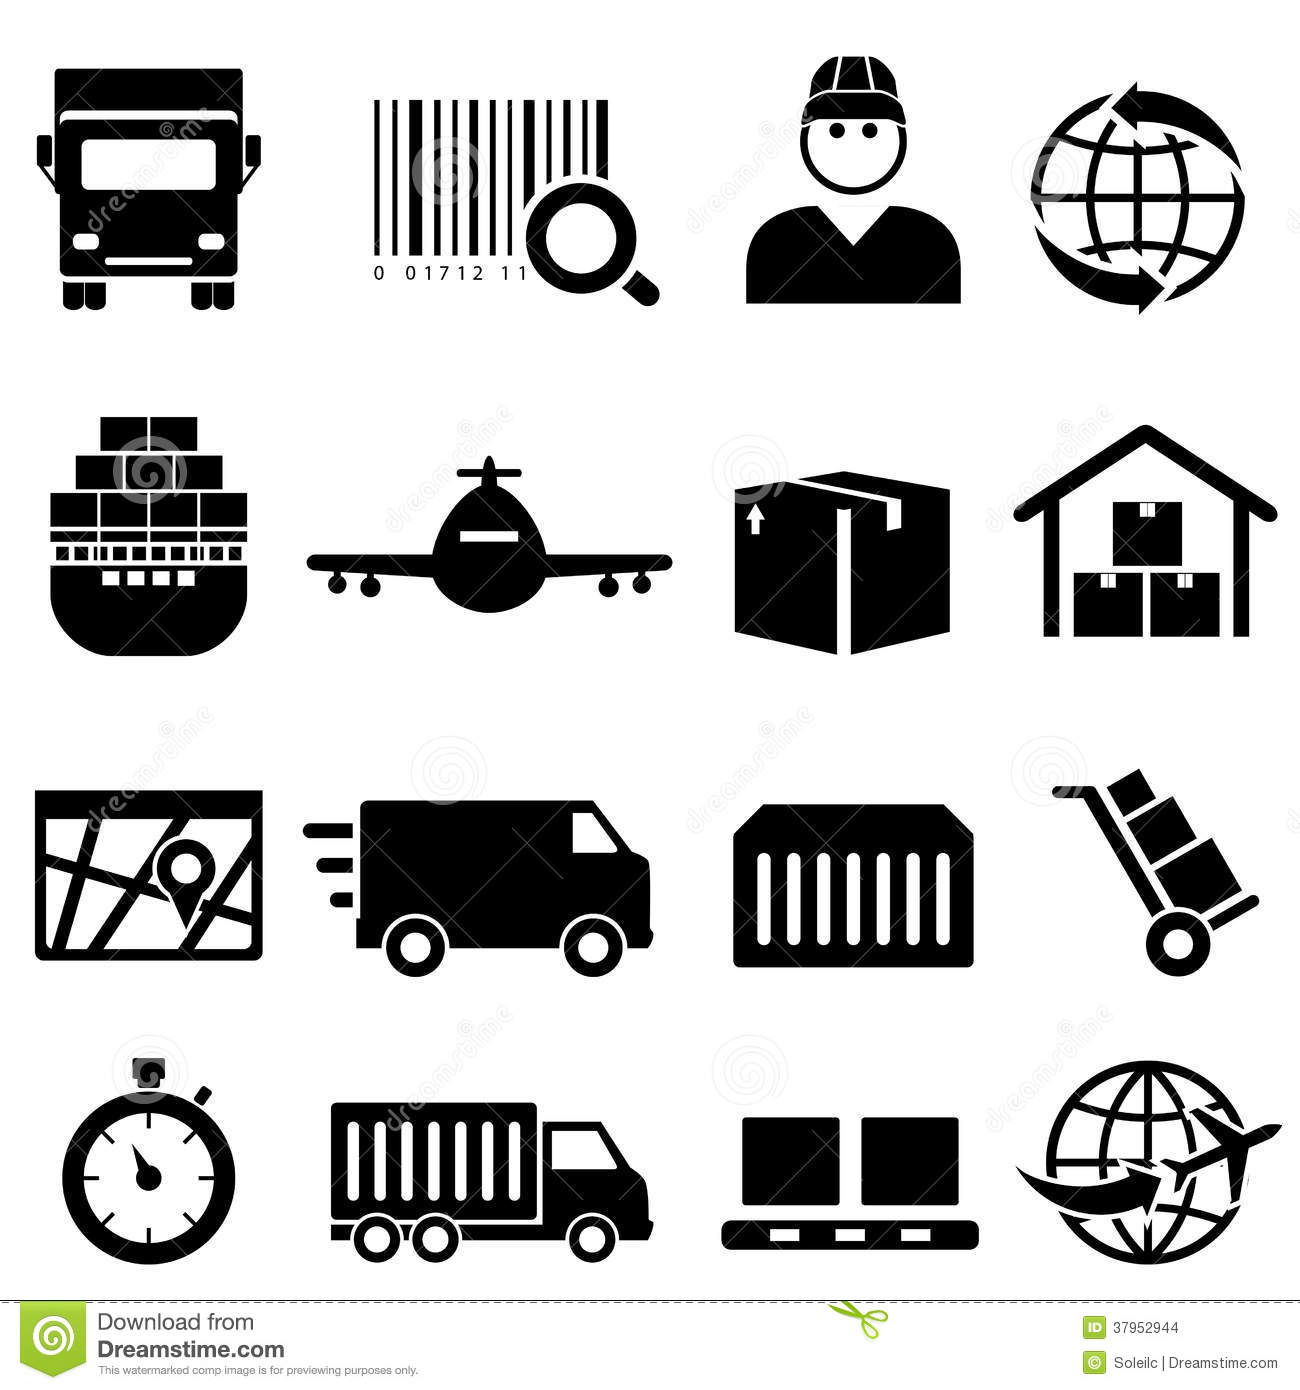 211436 Royalty Free Speed Clipart Illustration as well Art Background also Stock Illustration Drawing Of The Car also Stock Photography Burning Symbol Bicycle Wheel Black White Logo Image39735212 in addition Stock Illustration Cool Bus Silhouette Illustration School Image58261541. on fast car illustration